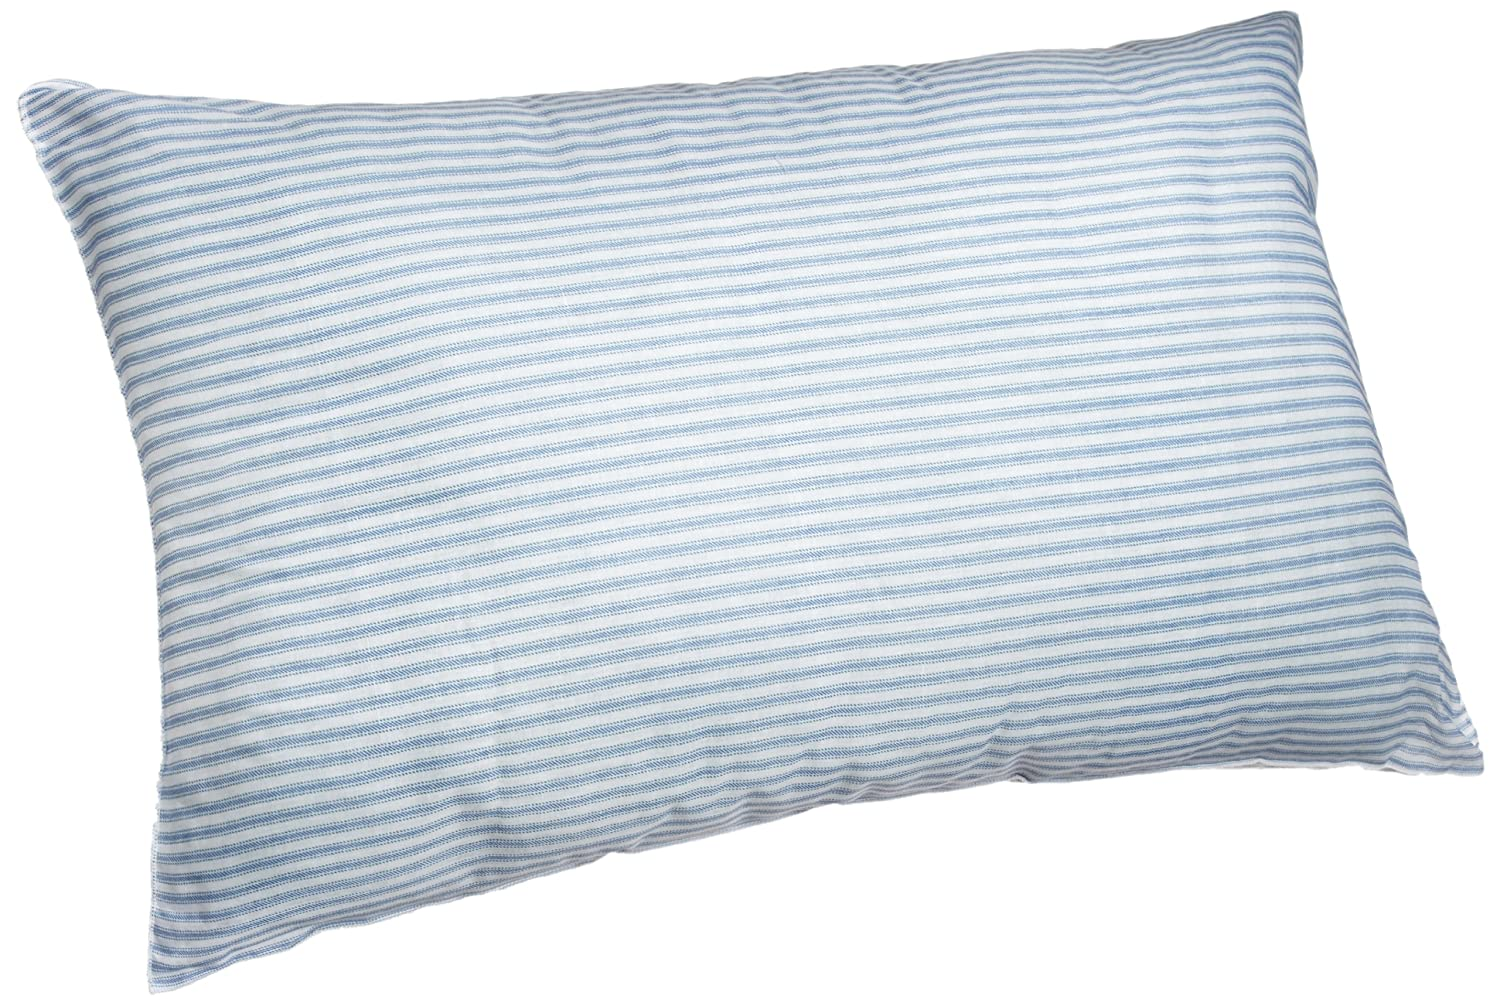 Blue And White Pillows Part - 33: Amazon.com: Adorable Adored Granny Pillow With Blue And White Stripe Poly  Cotton Cover, Standard: Home U0026 Kitchen